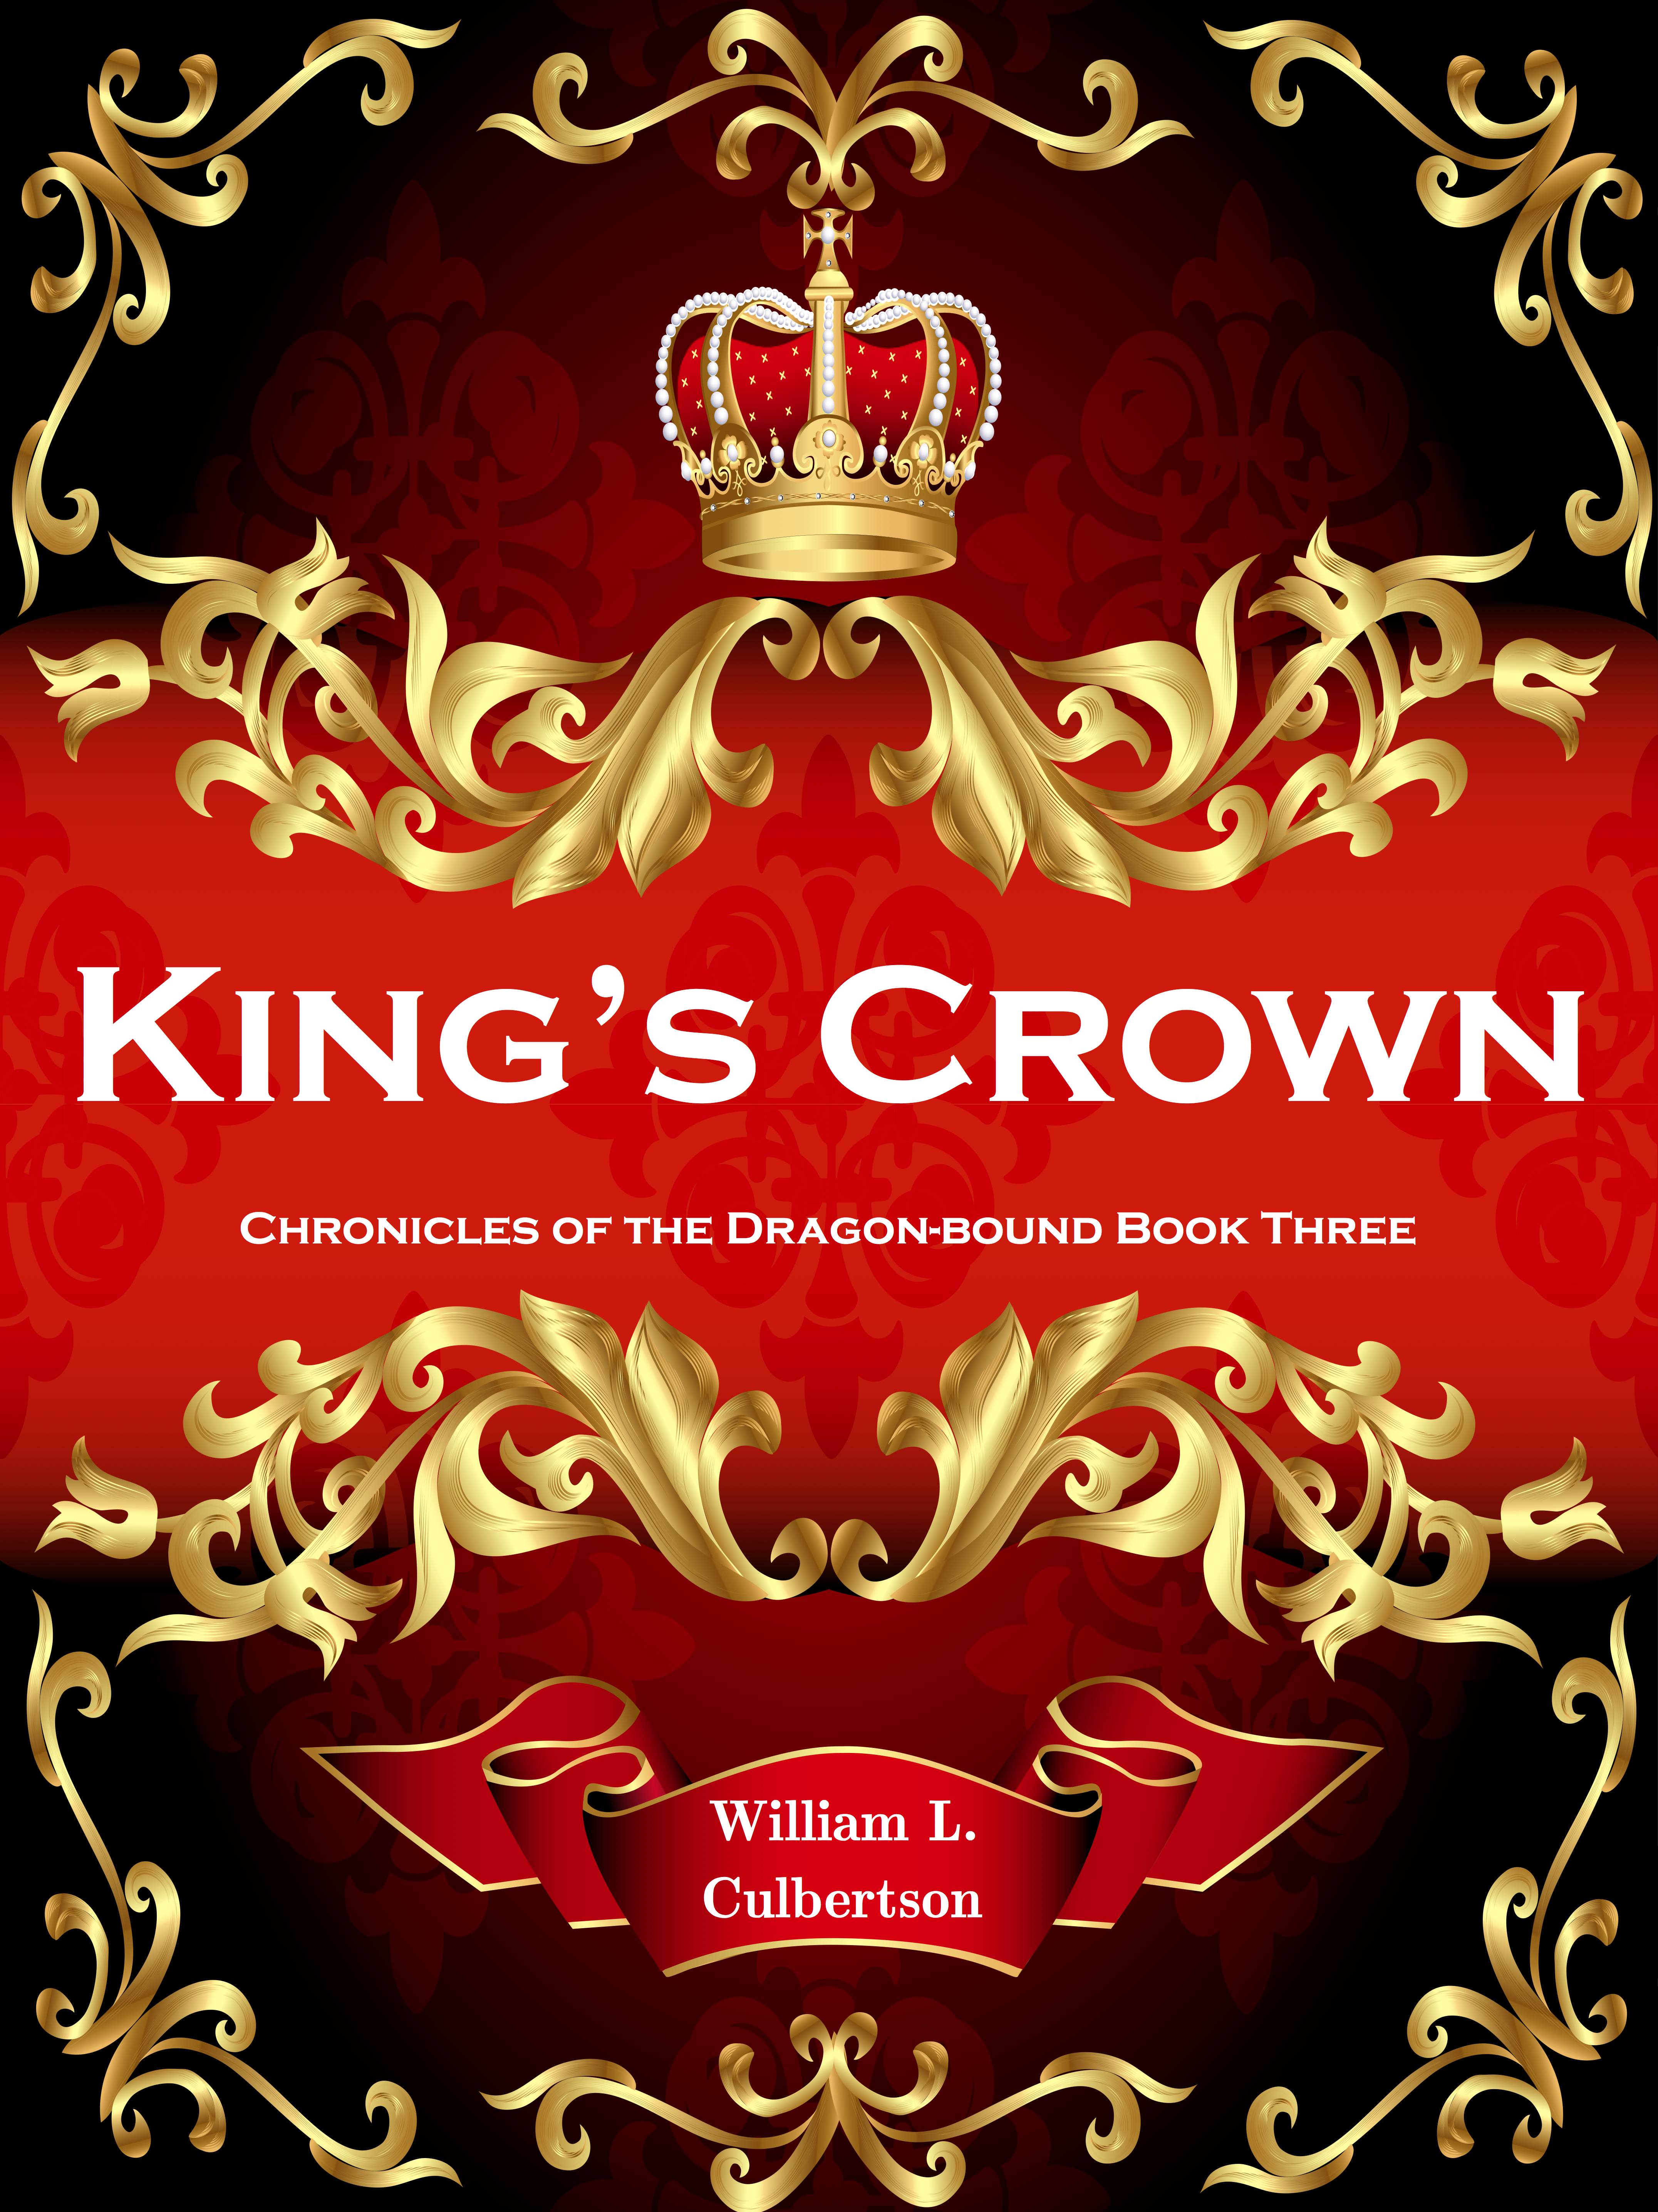 King's Crown: Chronicles of the Dragon-Bound, Book 3, an Ebook by William L  Culbertson